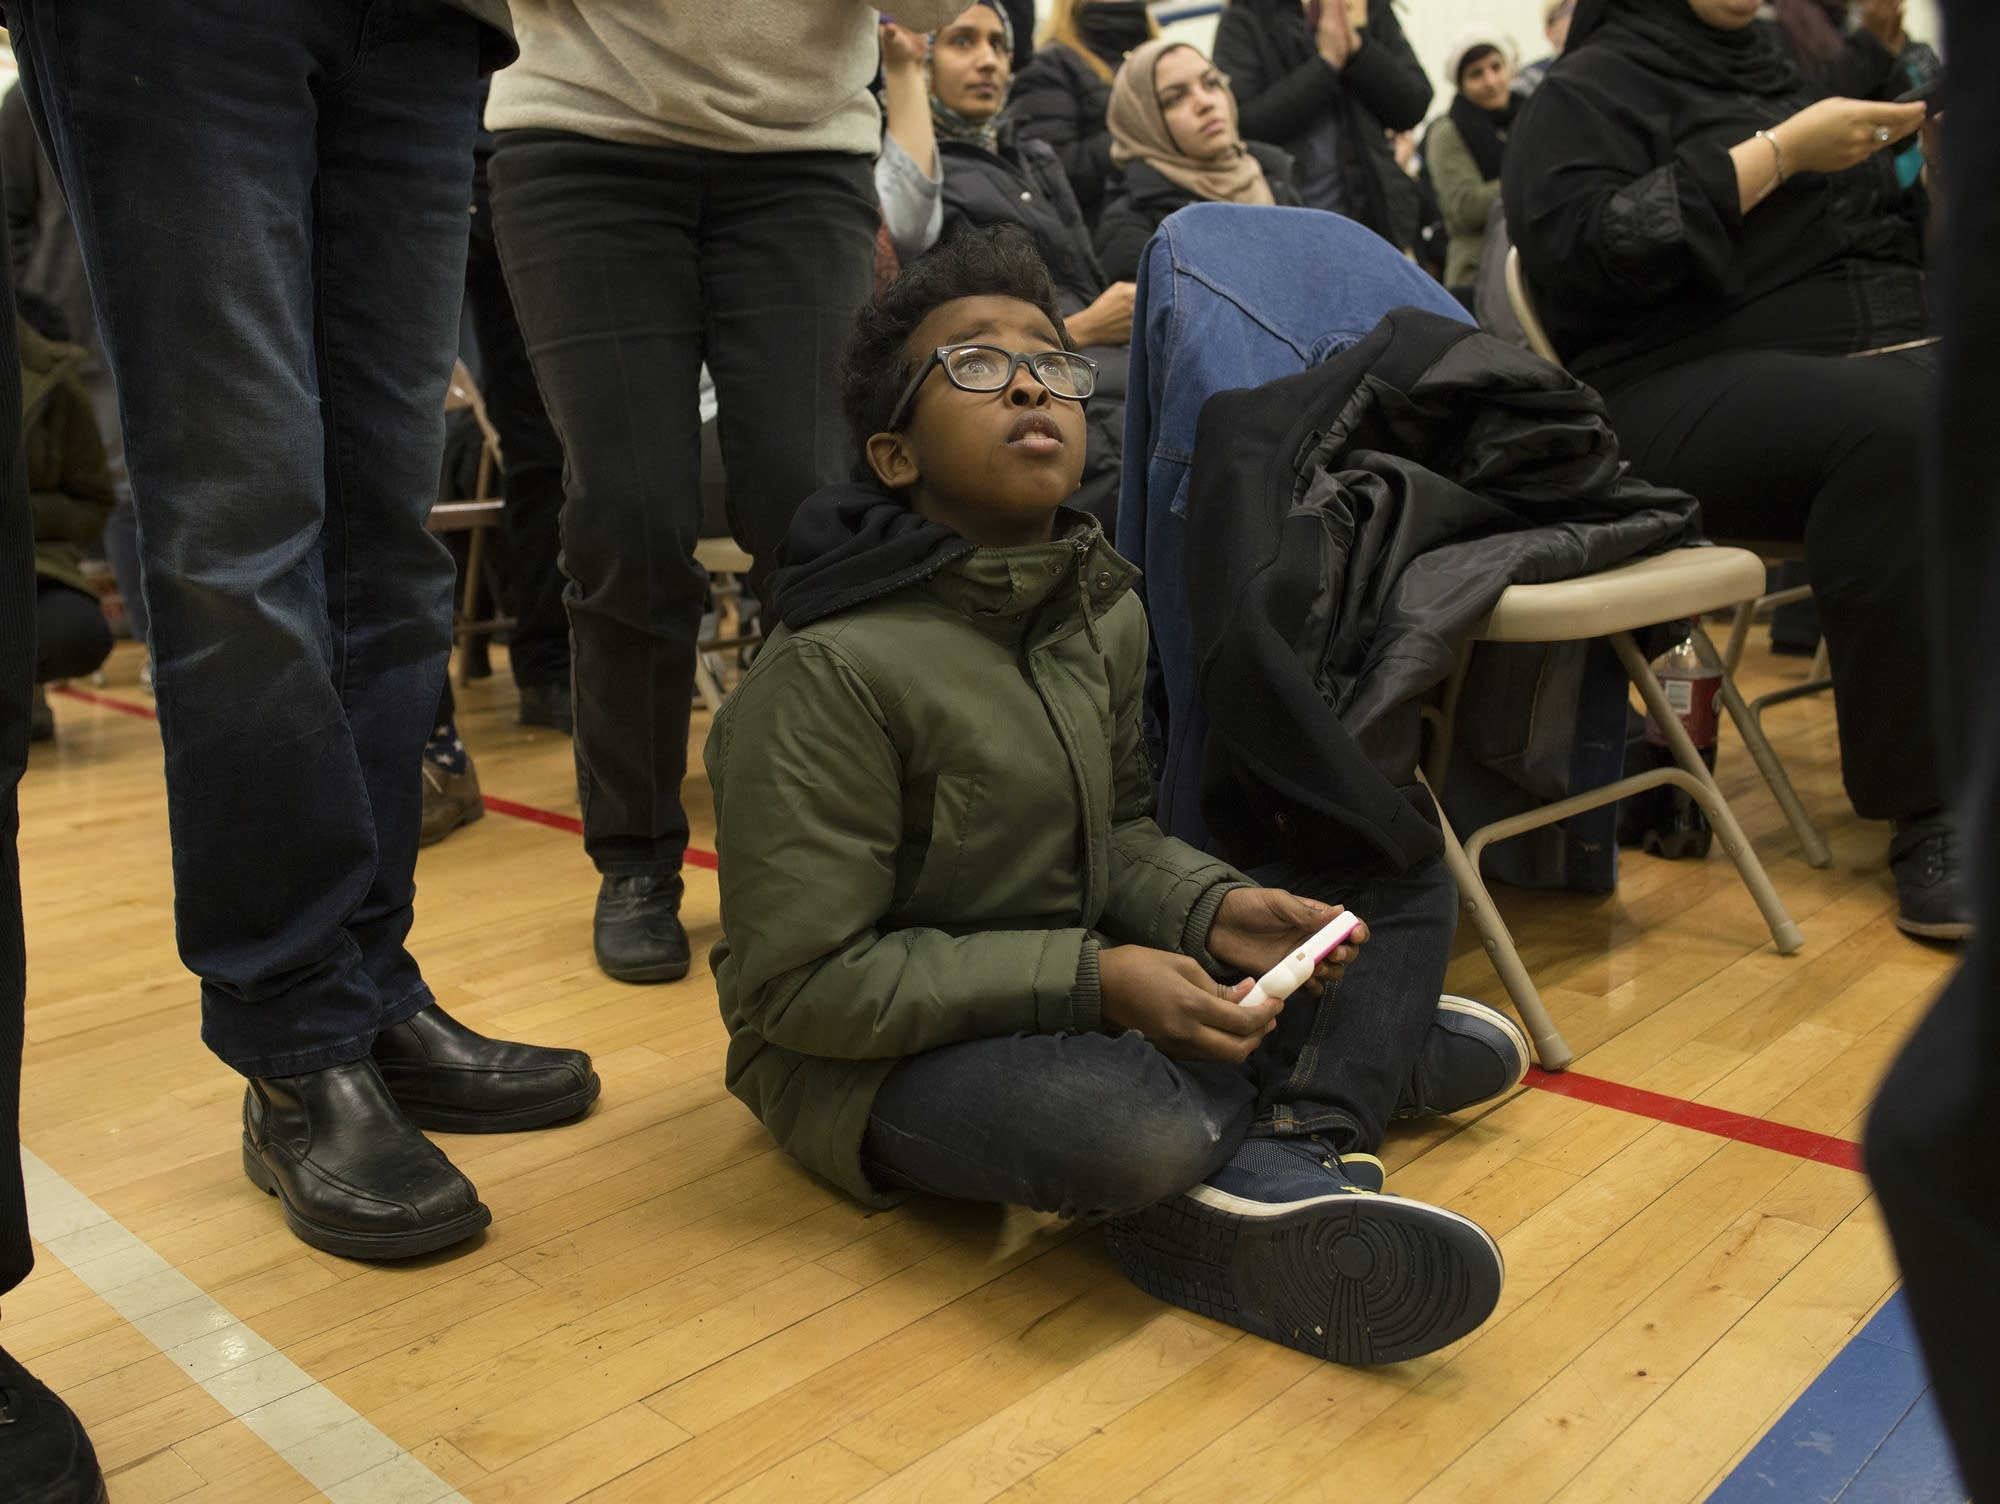 Ahmed Hirsi watches from the floor.